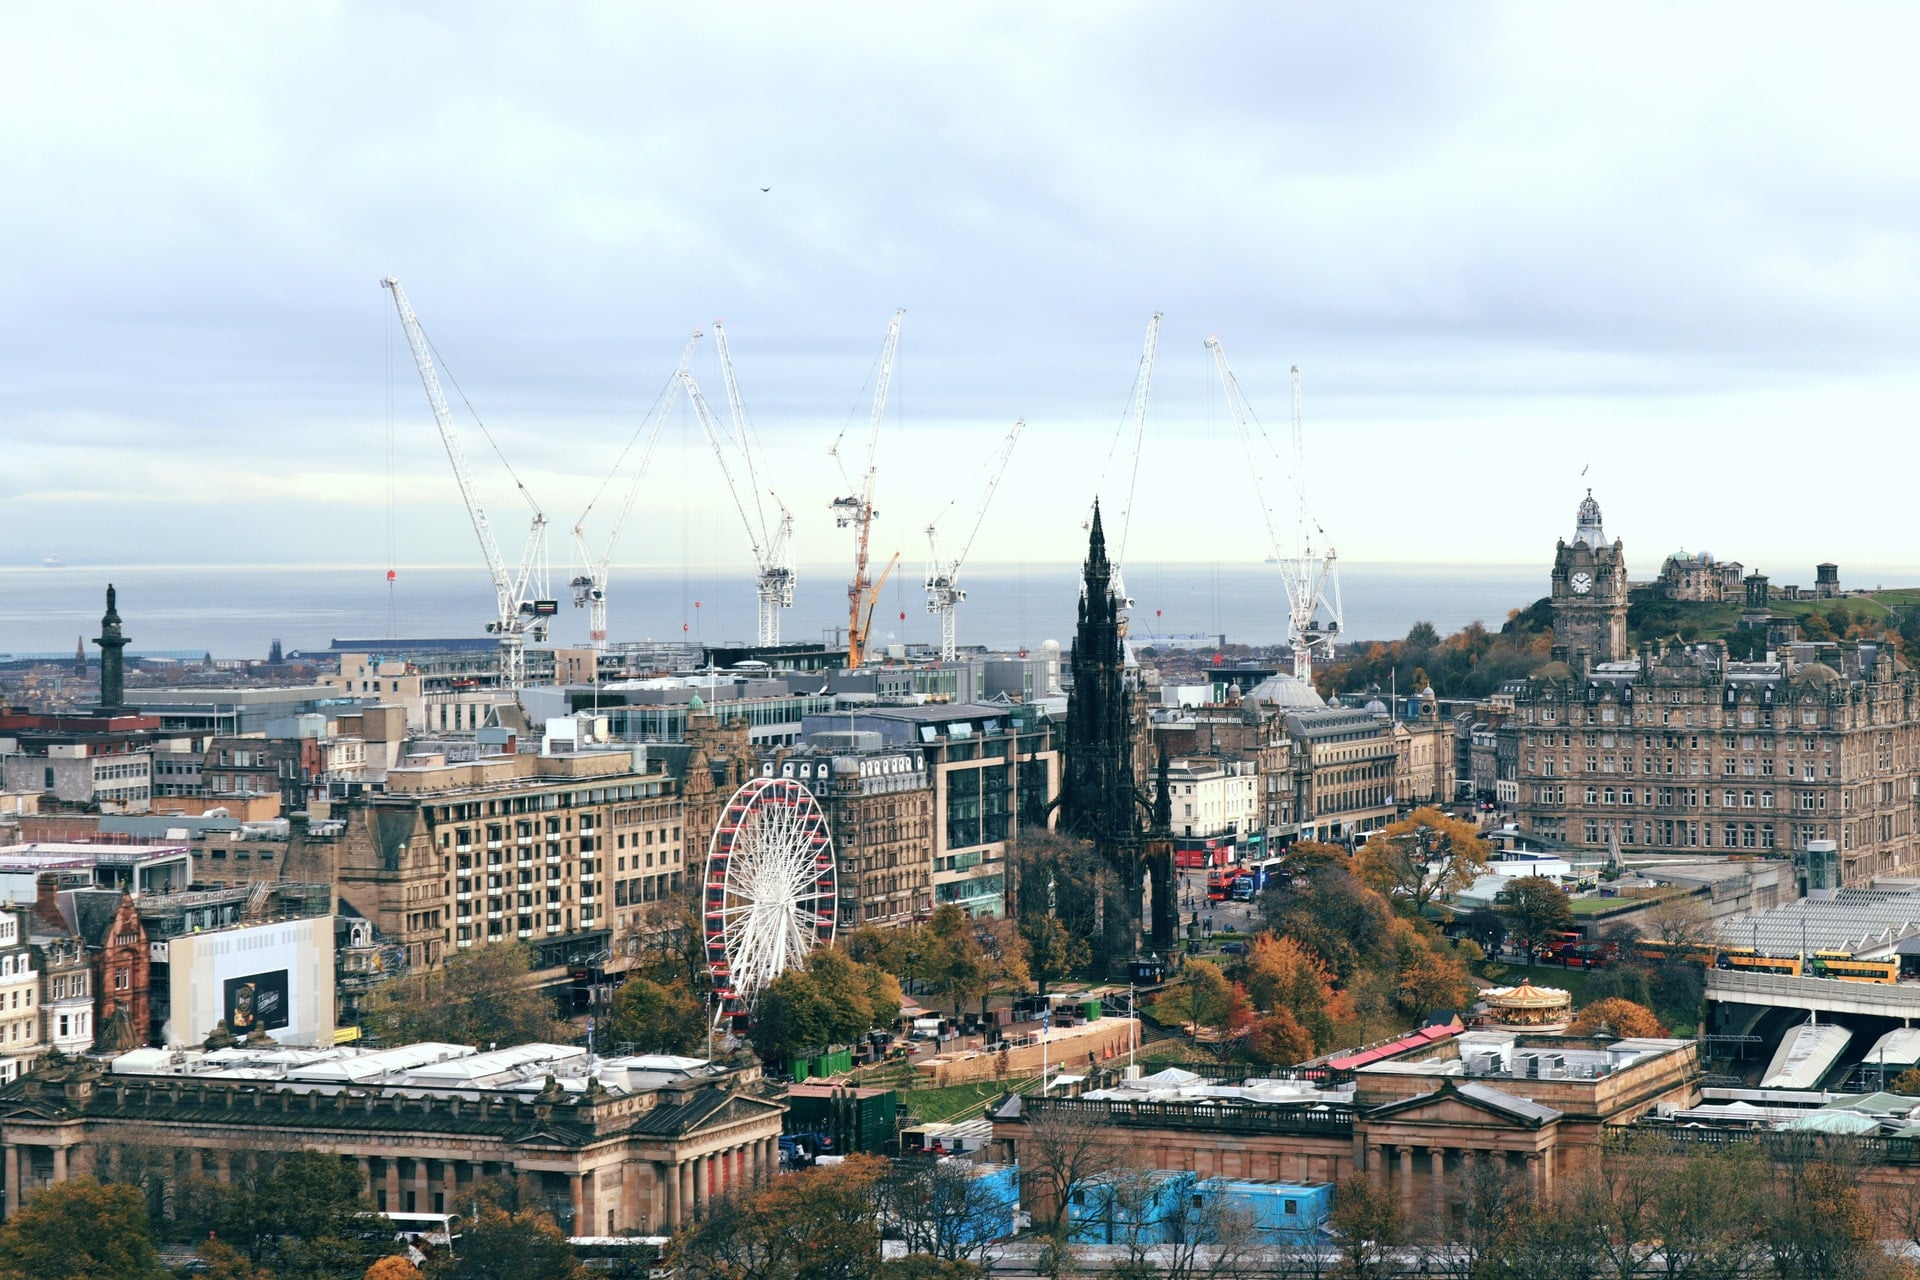 view-from-above-of-edinburgh-princes-street-gardens-with-sea-in-background